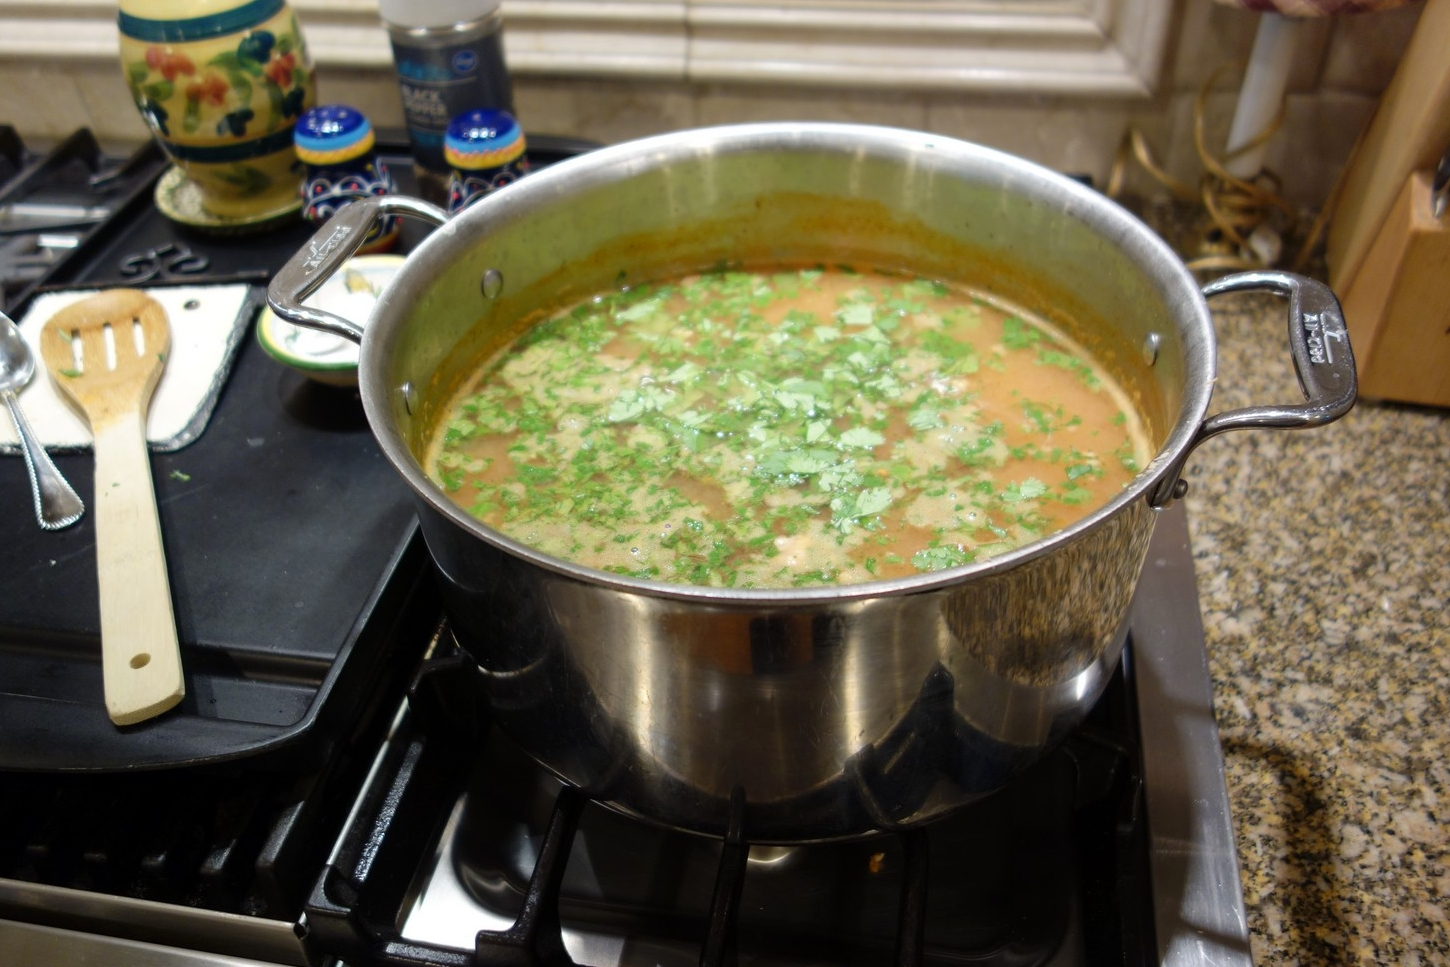 Finished soup, before garnishing with avocado.